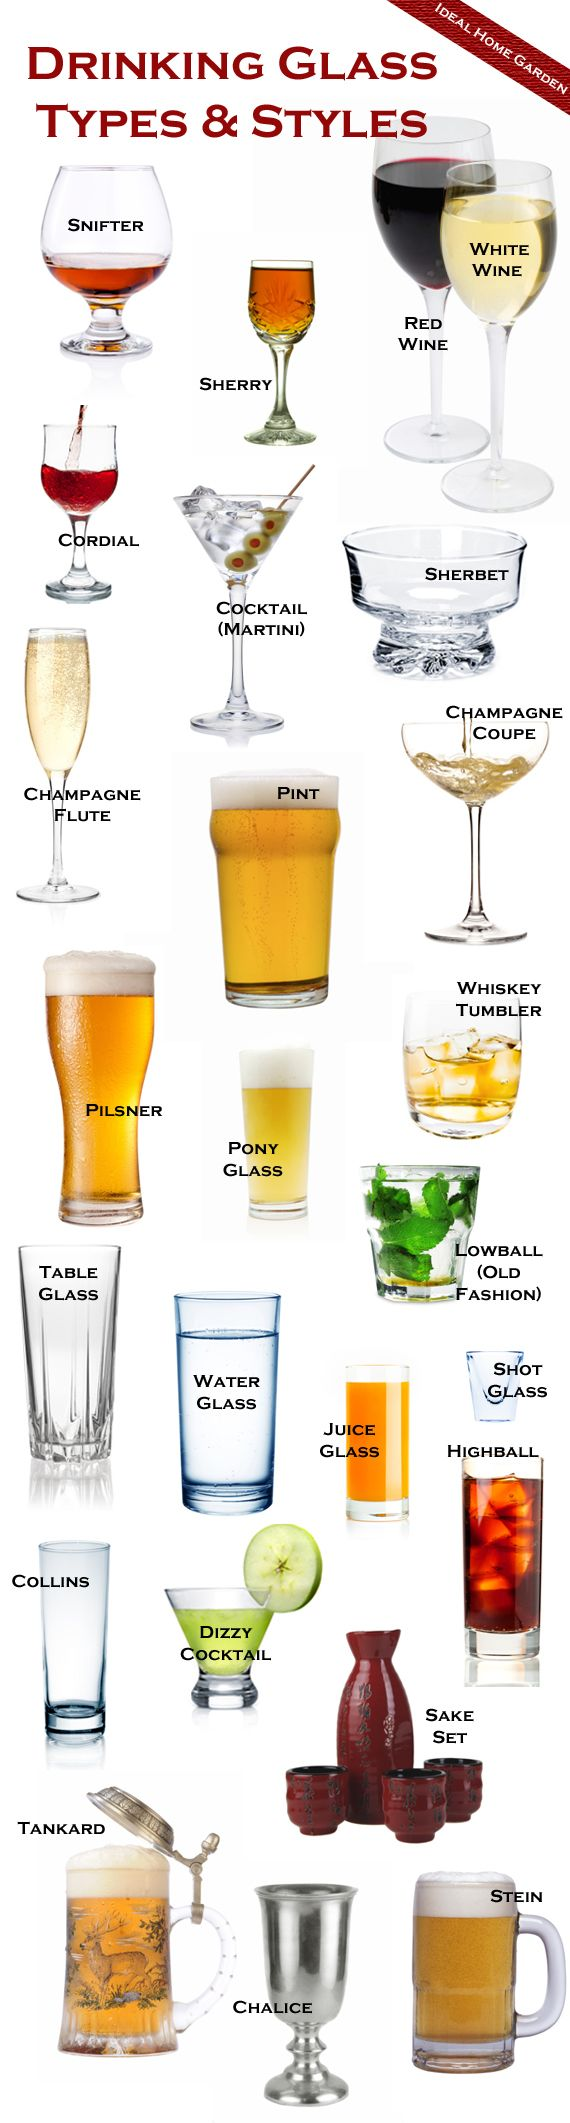 The different types of drinking glasses, and explanations of what theyre used for.